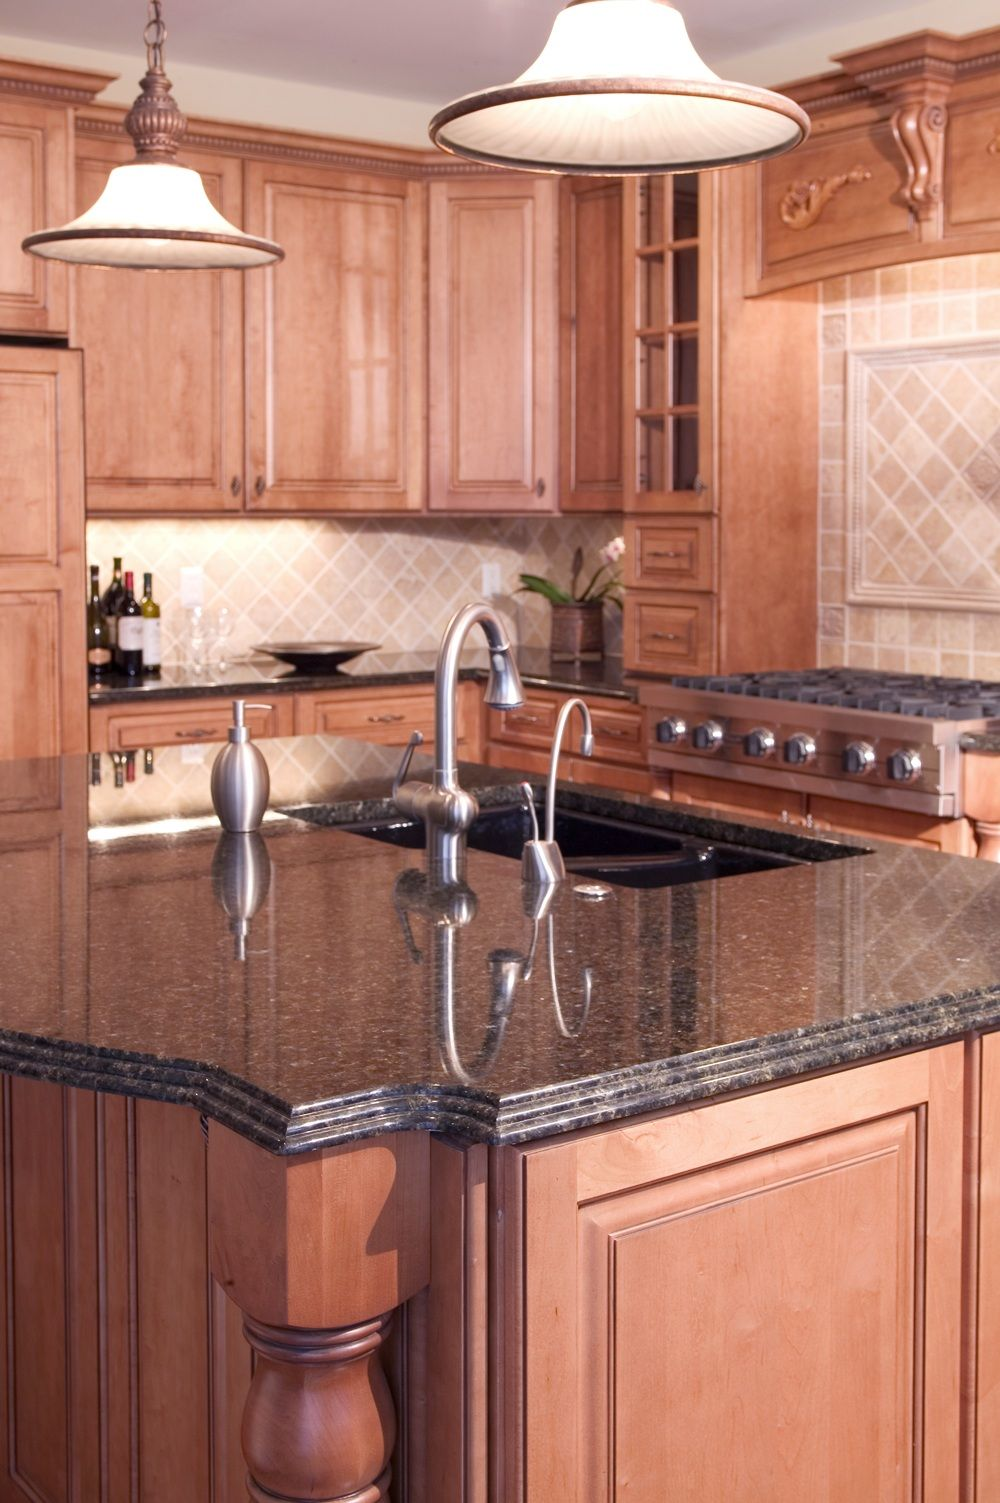 Kitchen cabinets and countertops beige granite for Kitchen cabinets and countertops ideas